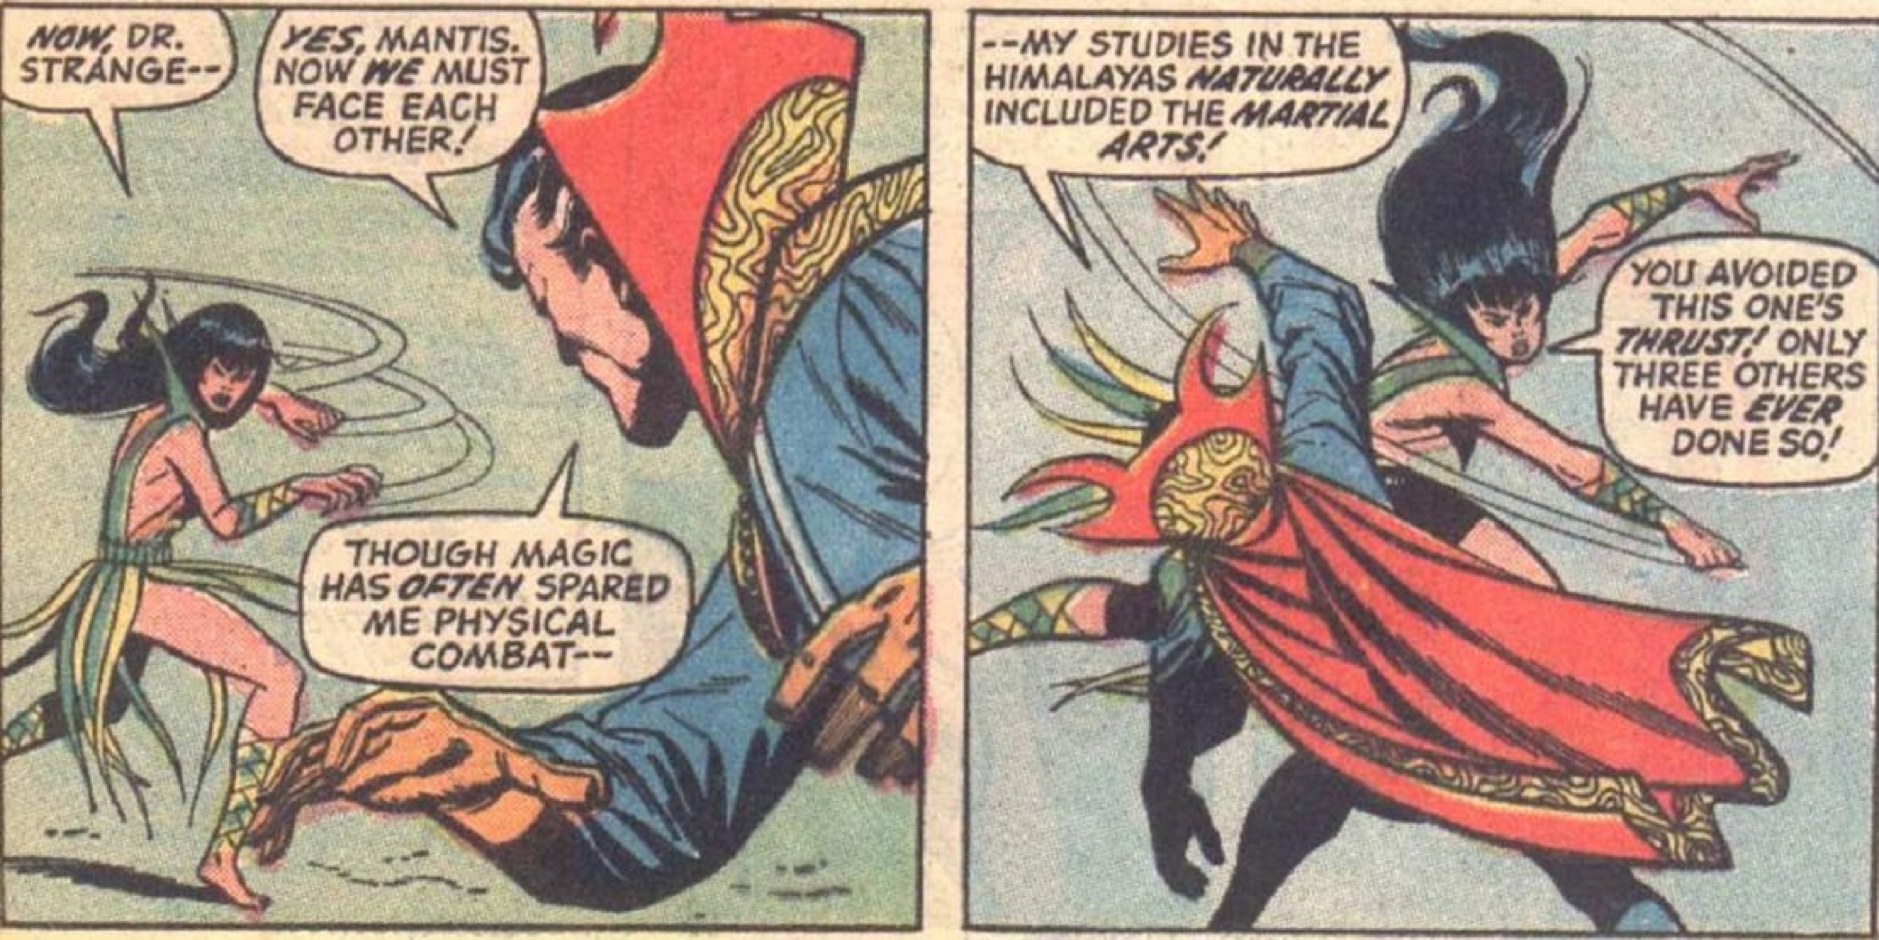 Who would win in a fight between Harry Potter and Doctor Strange